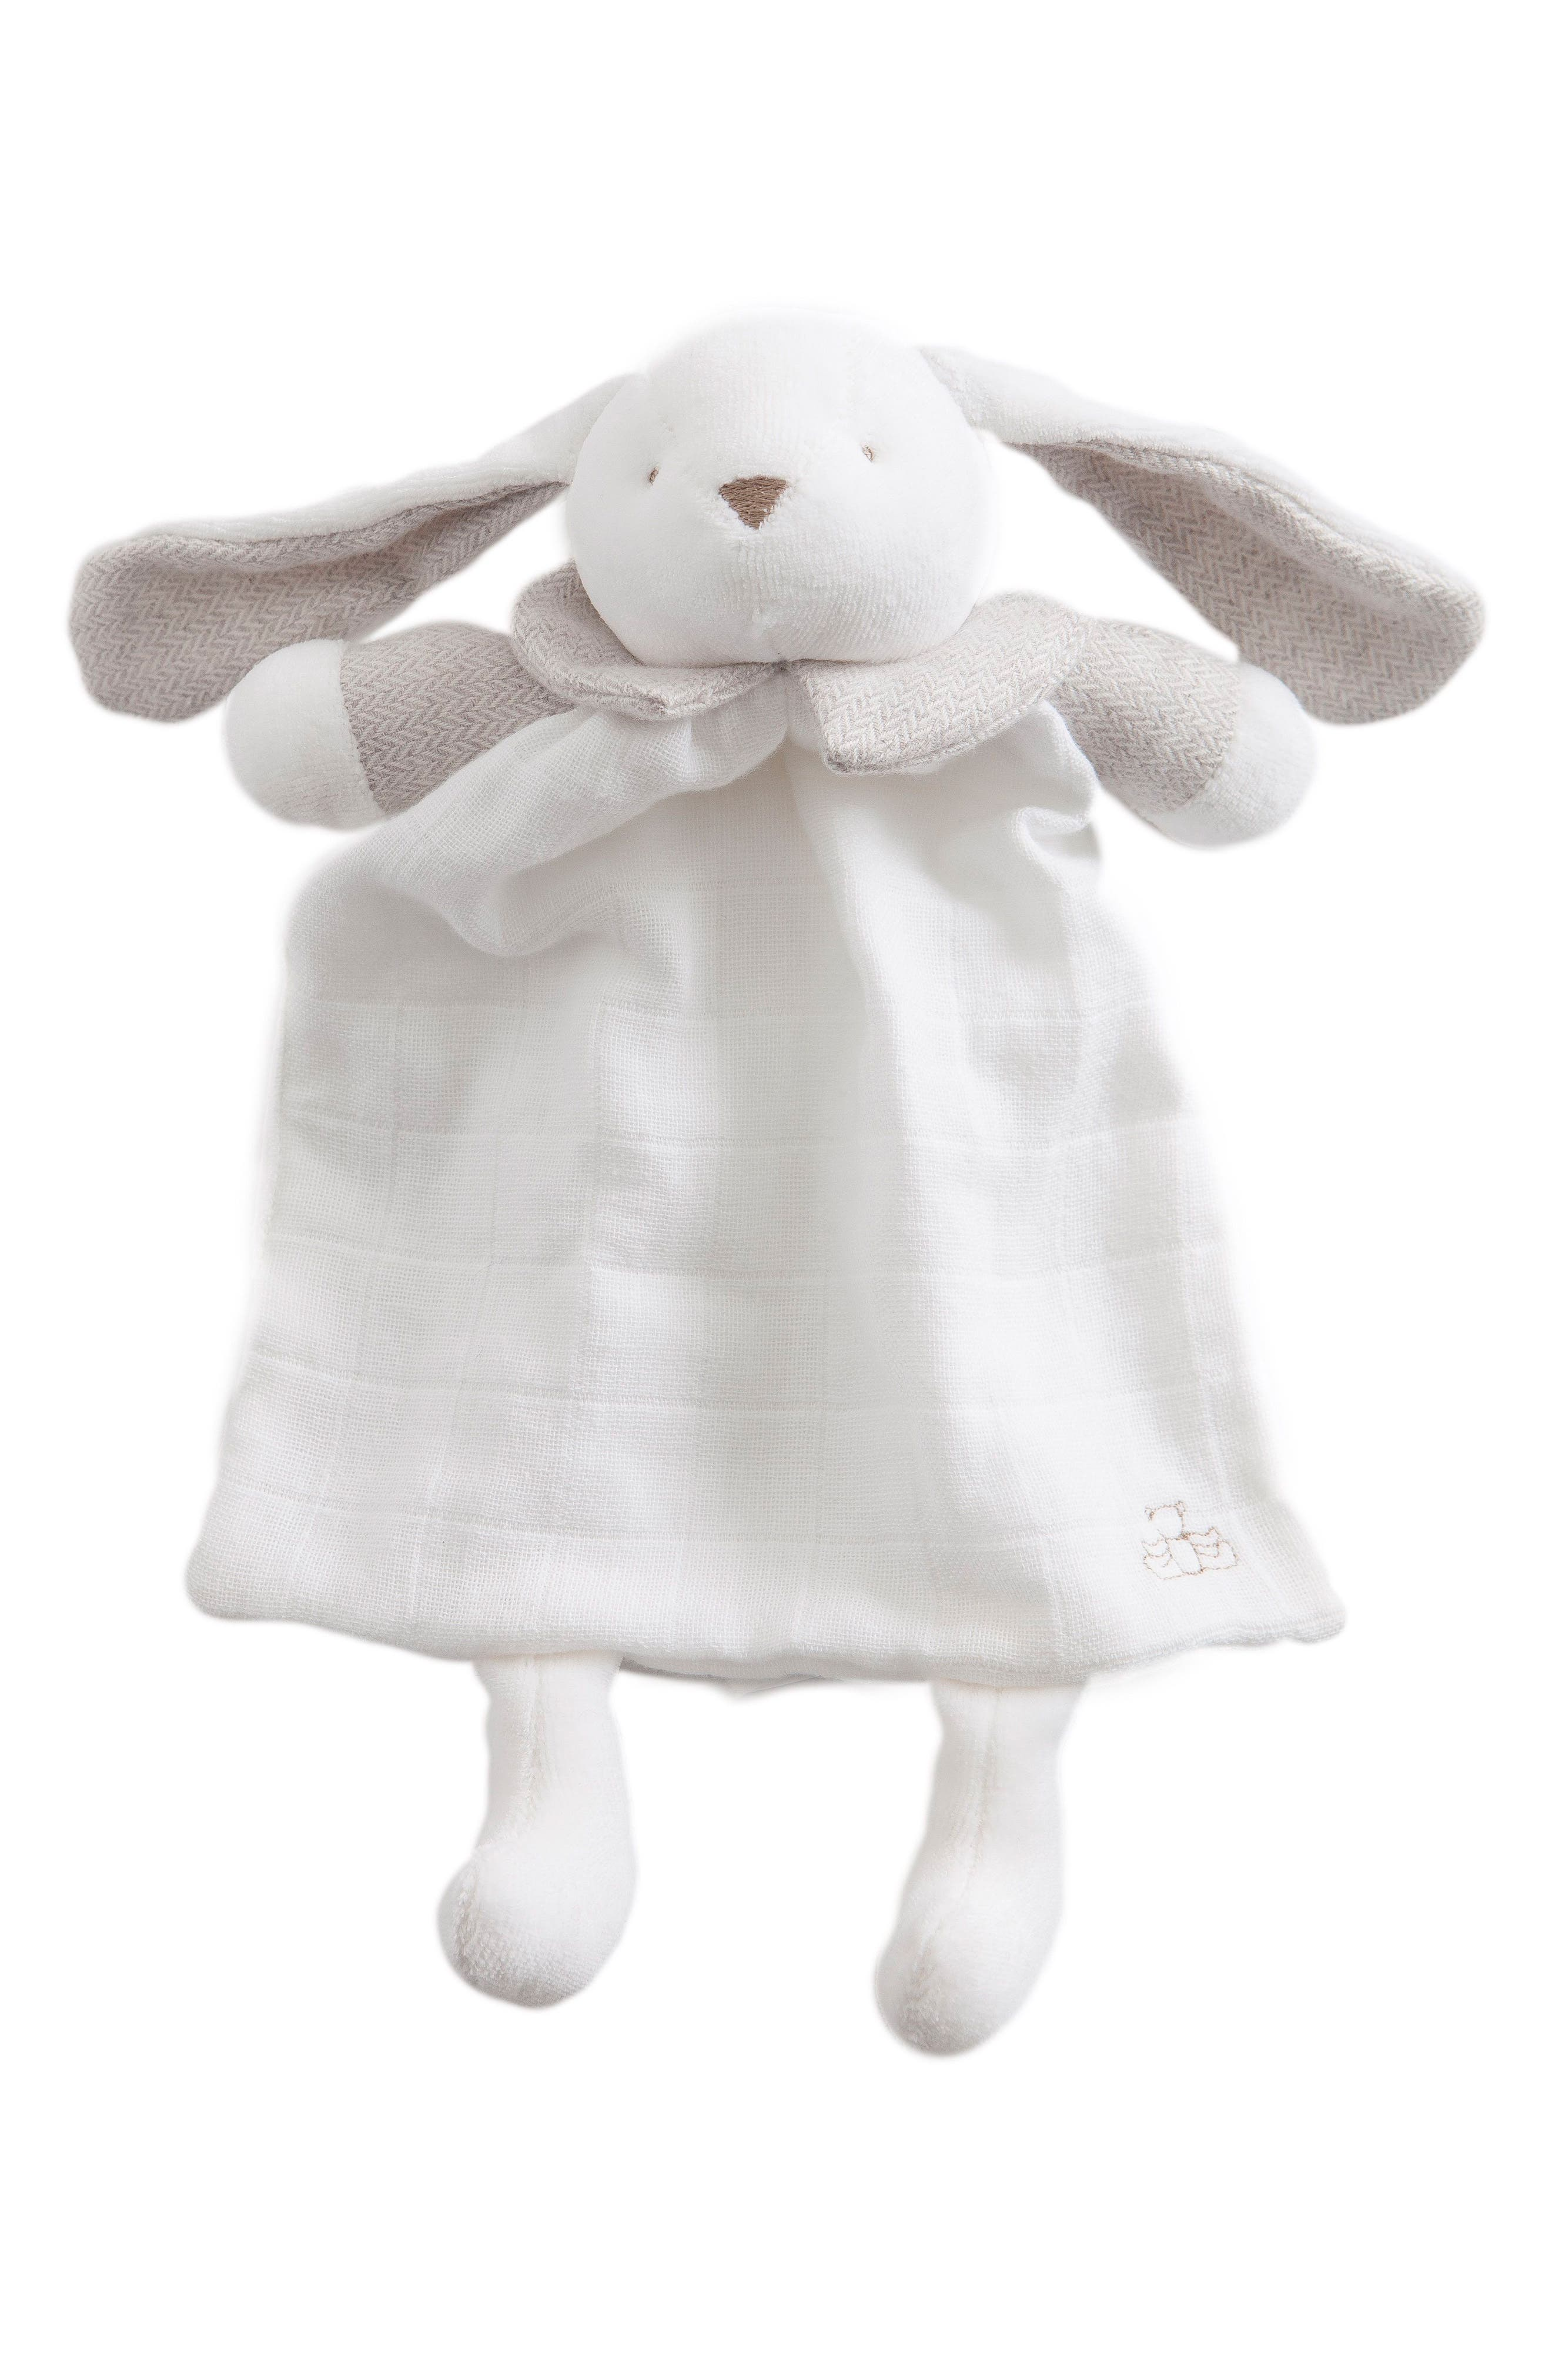 Alternate Image 1 Selected - Pamplemousse Peluches Rabbit Lovey Toy